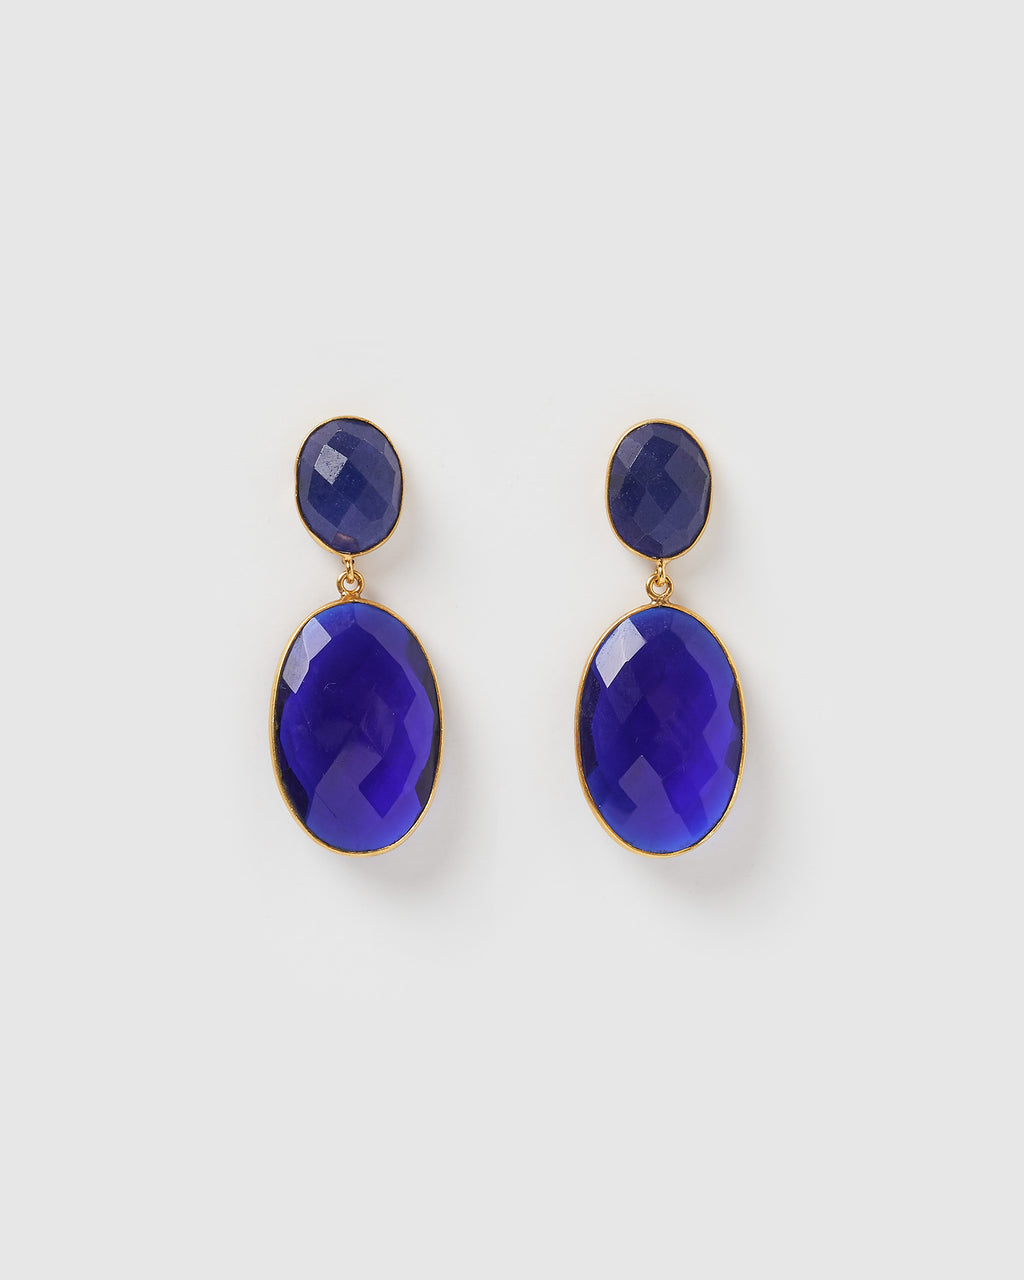 Izoa Divinity Earrings Blue Lapis